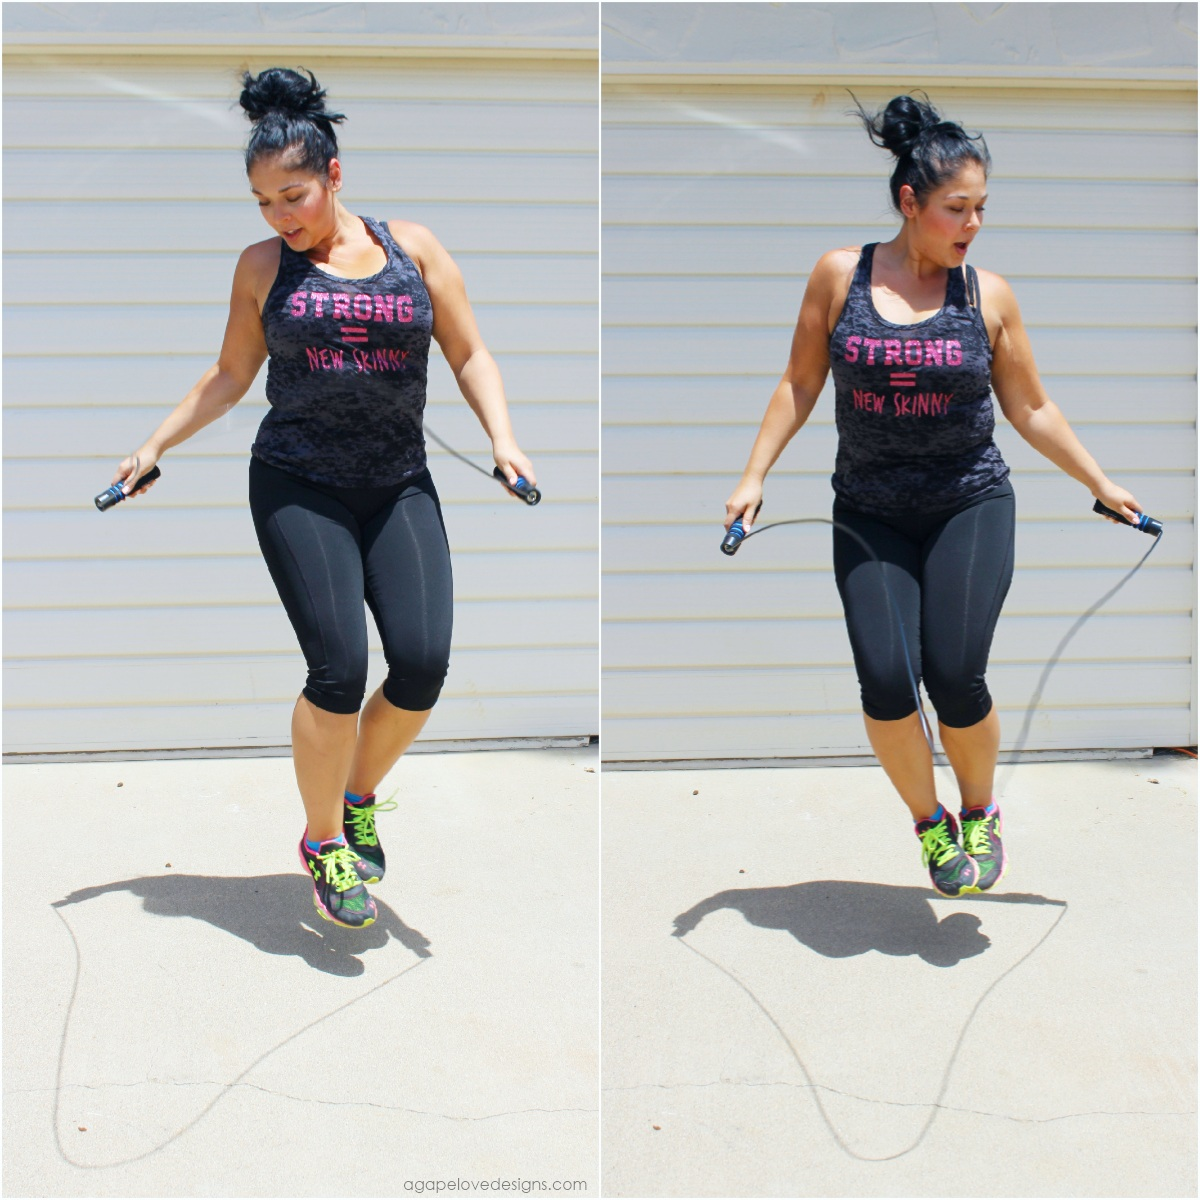 Agape Love Designs: Get A Full Body Workout - Jumping Rope!